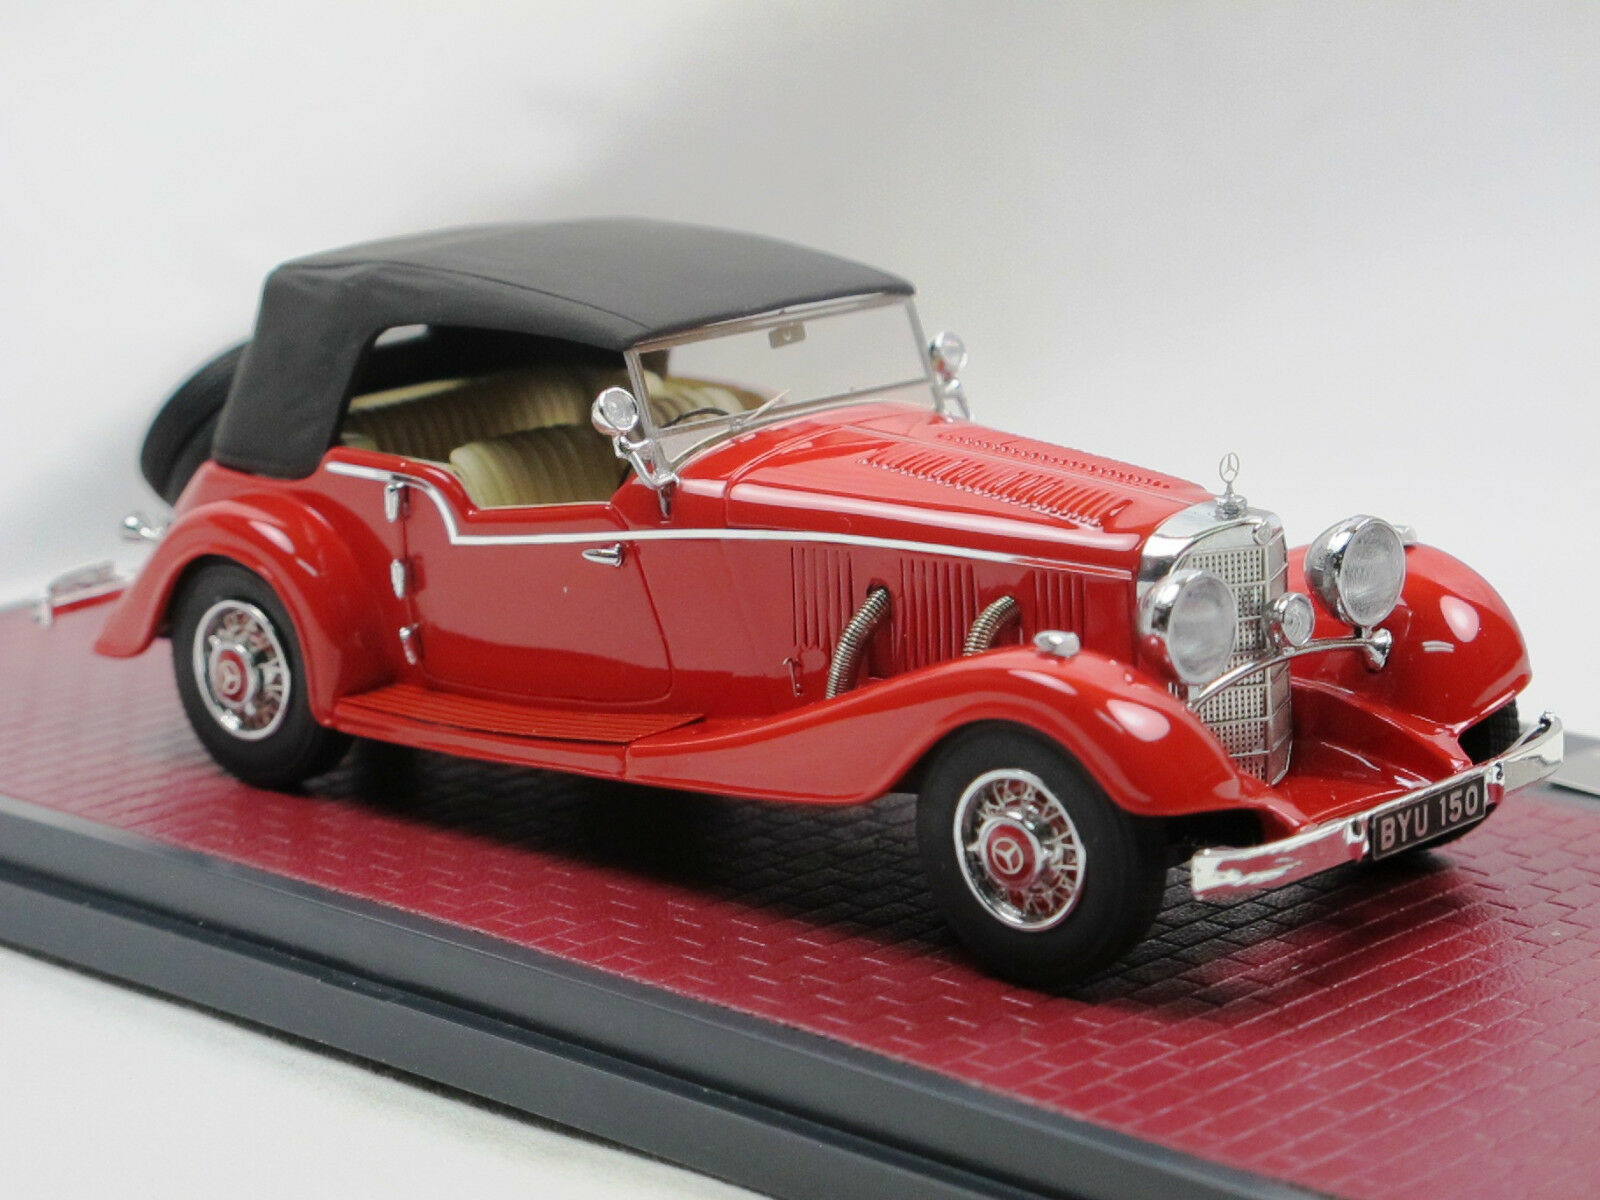 Matrice 1934 Mercedes-Benz Mercedes-Benz Mercedes-Benz 500k Tourer by Mayfair Closed 1 43 limited edition 199 c24e12